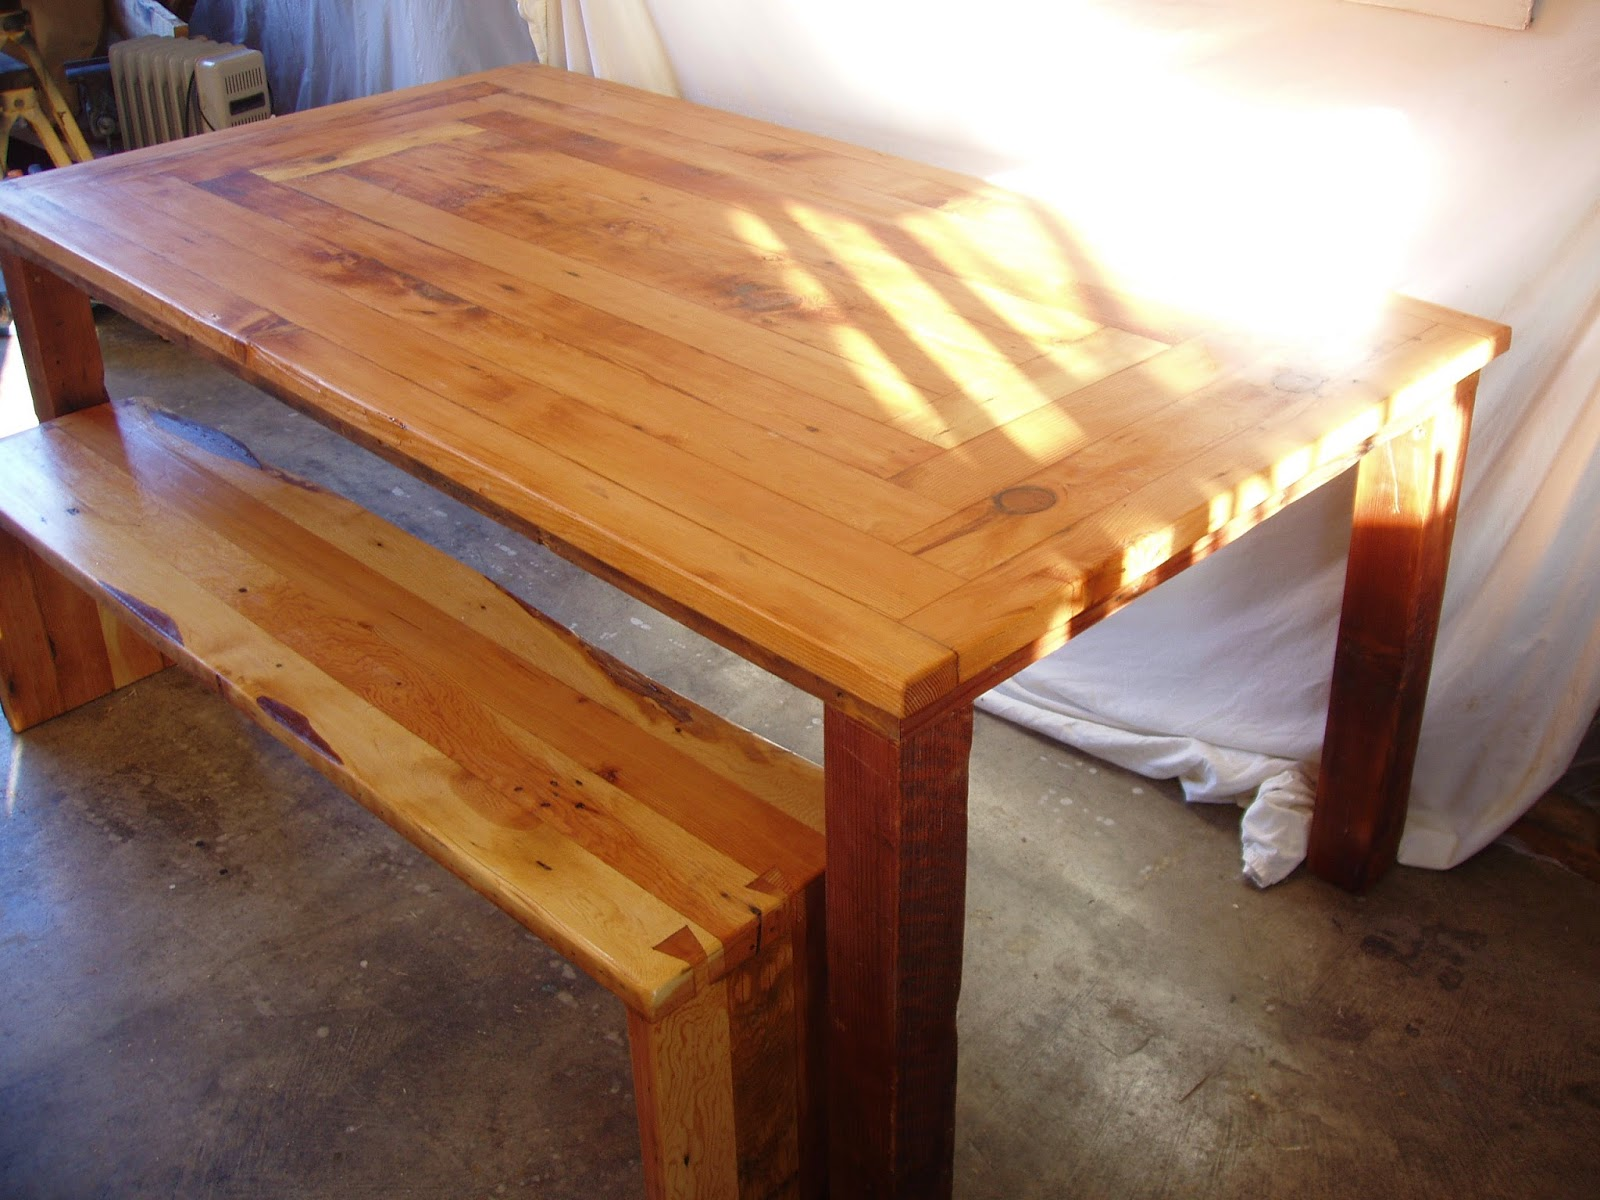 This Table Is 72 X 40 X 30 High, The Bench Is 60 X 13 X 18 High. For  Details, Contact, And Purchasing Information Visit My Online Shop At ...